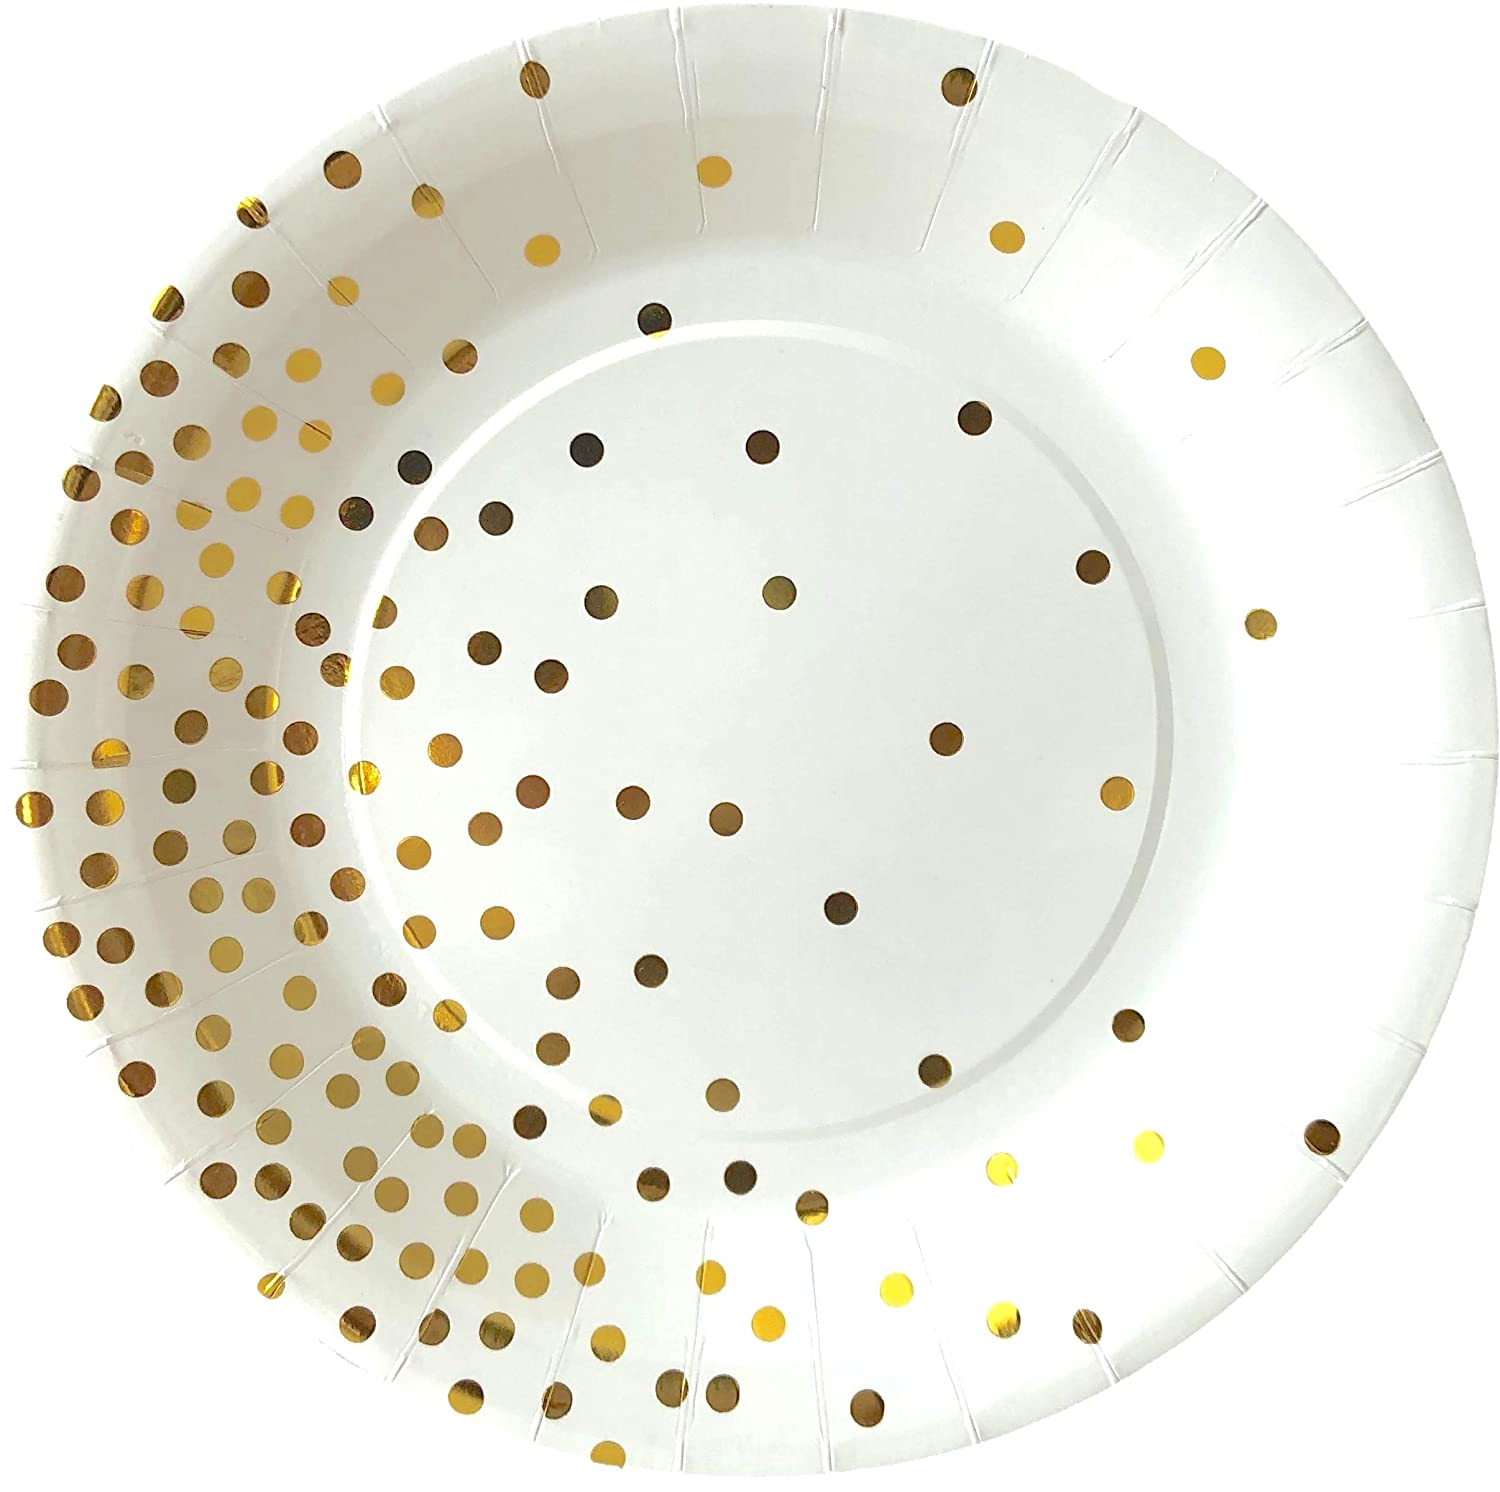 Disposable Plates 7 Plates 9oz Cups for Birthday Baby Shower 7 Plates Partay Shenanigans 9 Plates Serves 24-72 Piece White Paper Party Plates and Cups Set with Gold Foiled Confetti Polka Dots Party Supplies